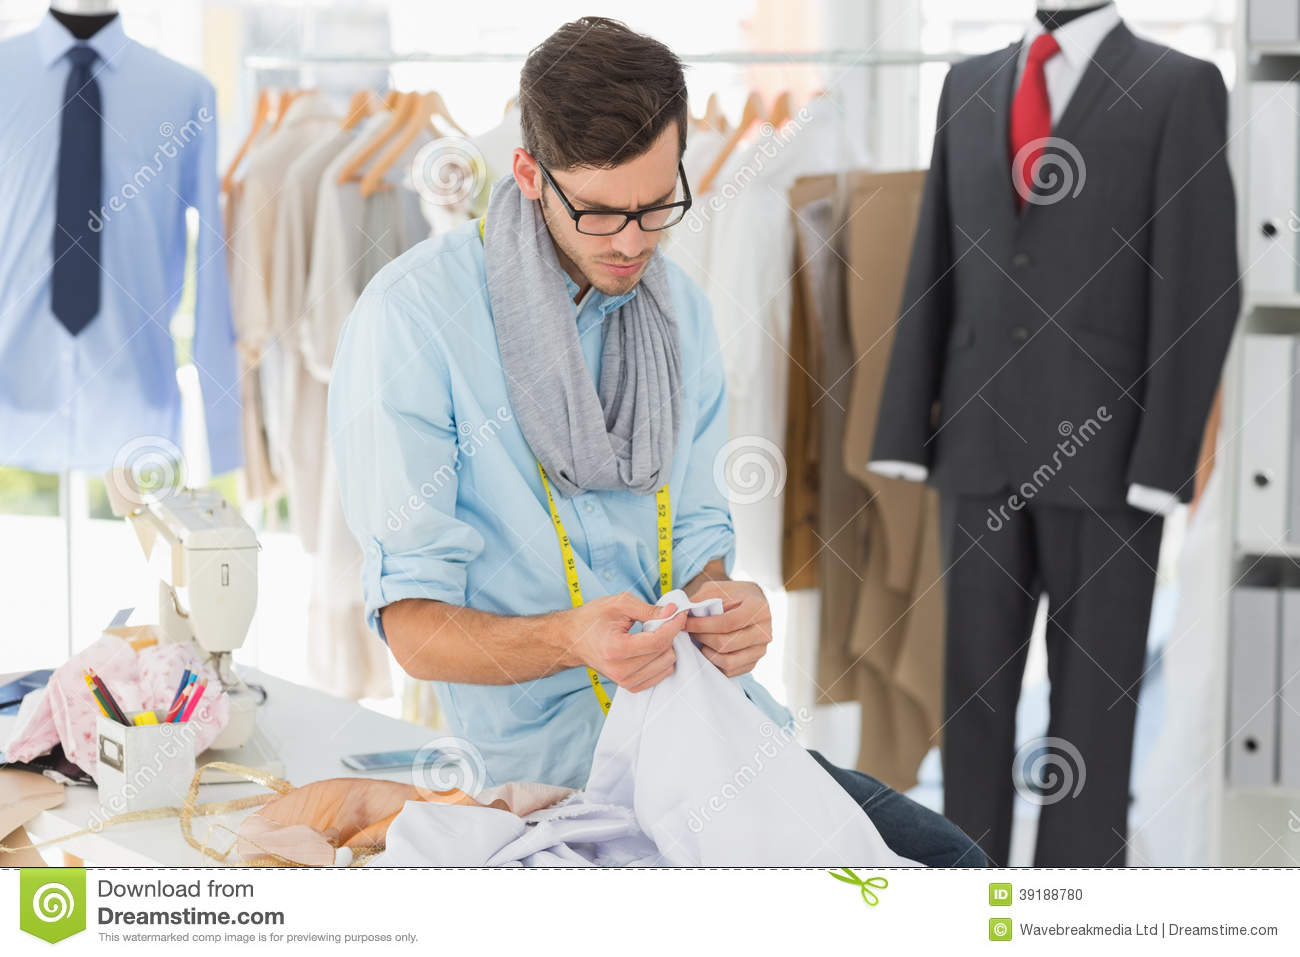 Concentrated Male Fashion Designer At Work Stock Photo ...